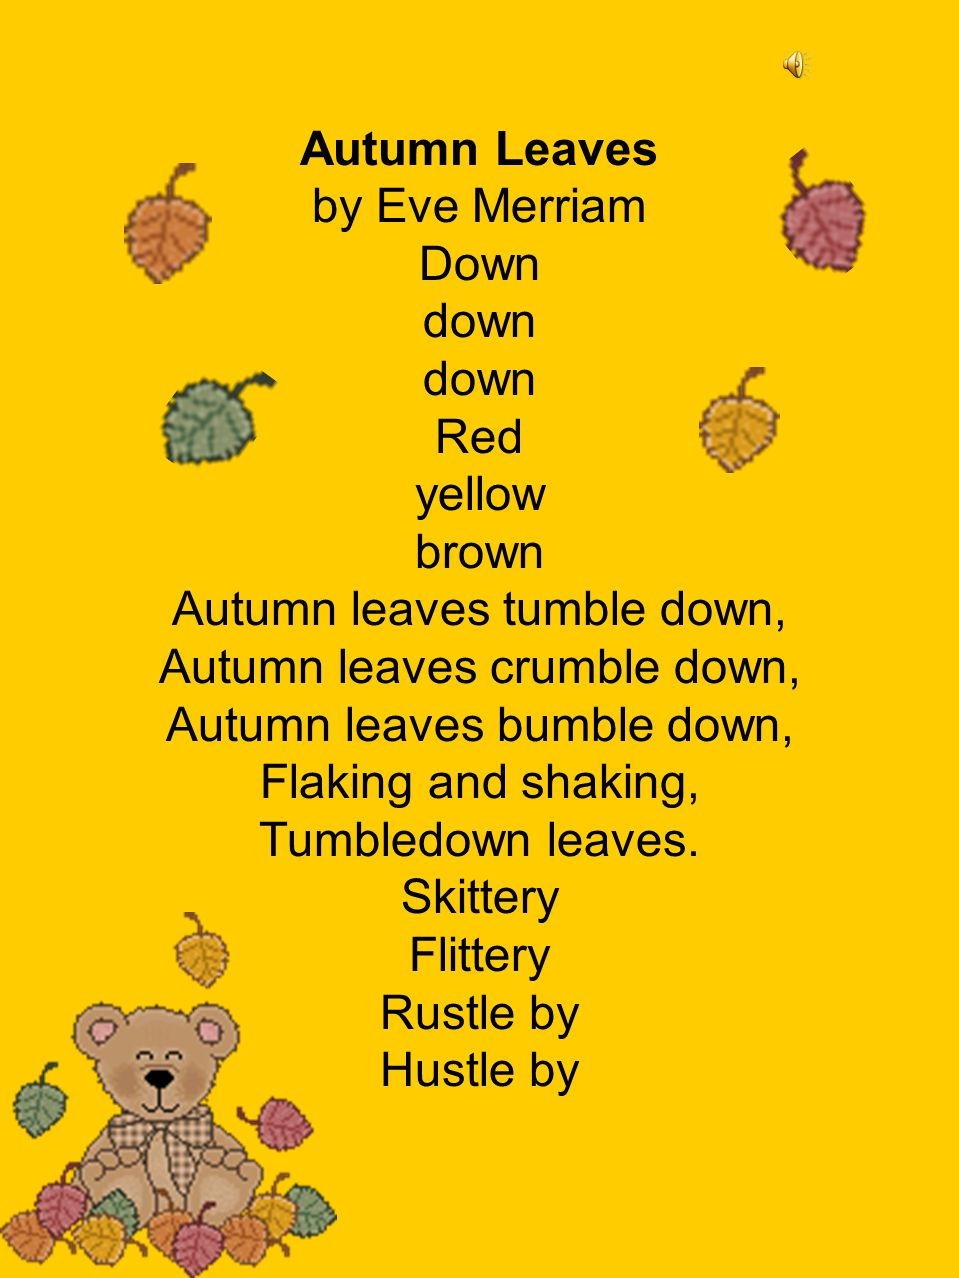 Autumn Leaves by Eve Merriam Down down down Red yellow brown Autumn leaves tumble down, Autumn leaves crumble down, Autumn leaves bumble down, Flaking and shaking, Tumbledown leaves.